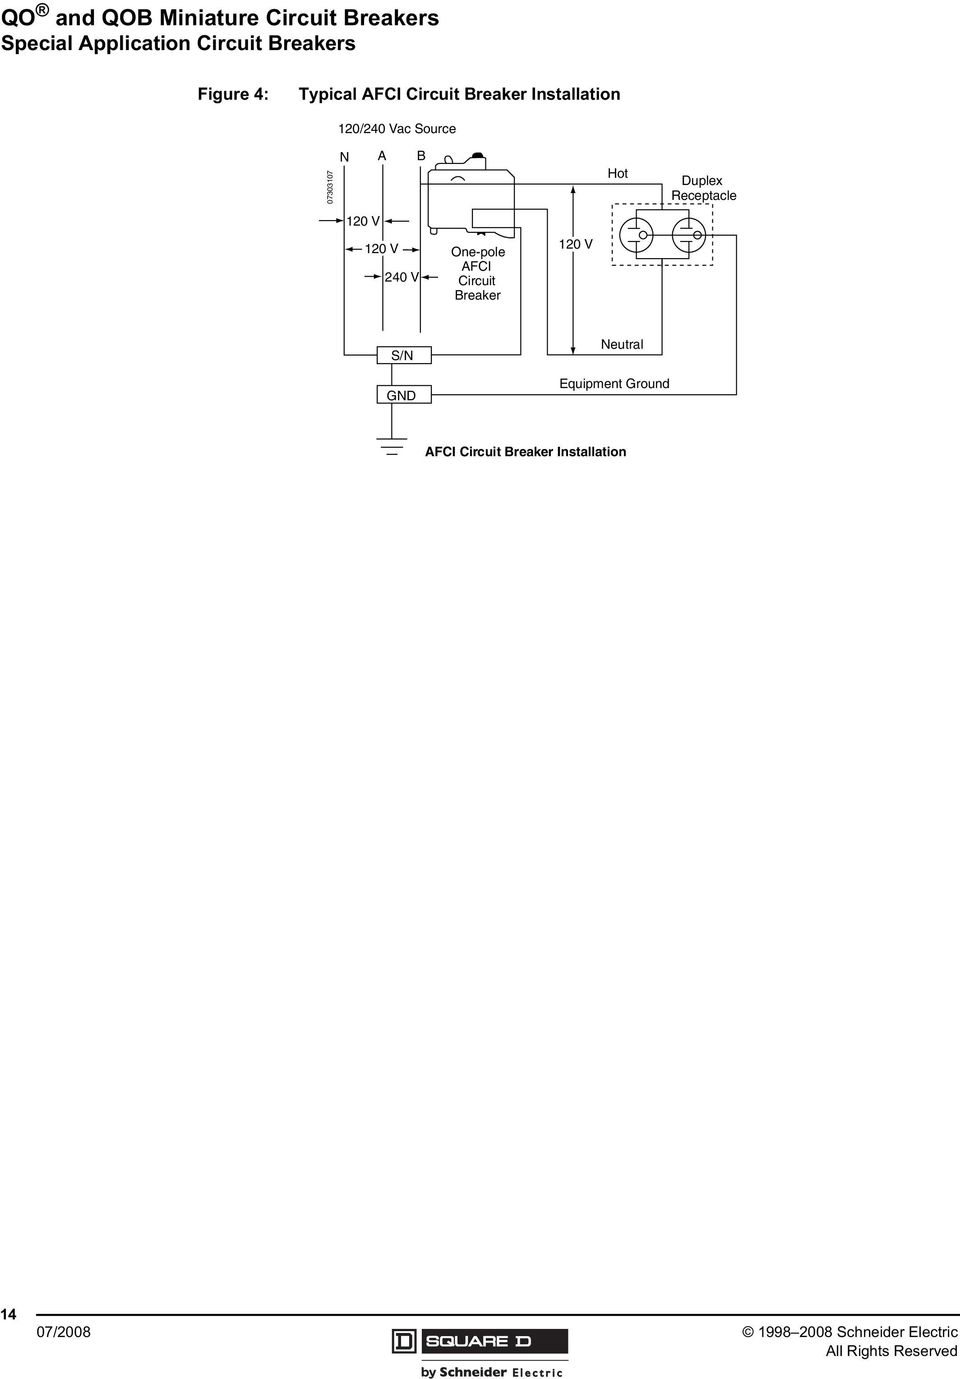 Qo And Qob Miniature Circuit Breakers Pdf Afci Gfci Wiring Diagram Find A Guide With One Pole 1 V Breaker Hot Duplex Receptacle